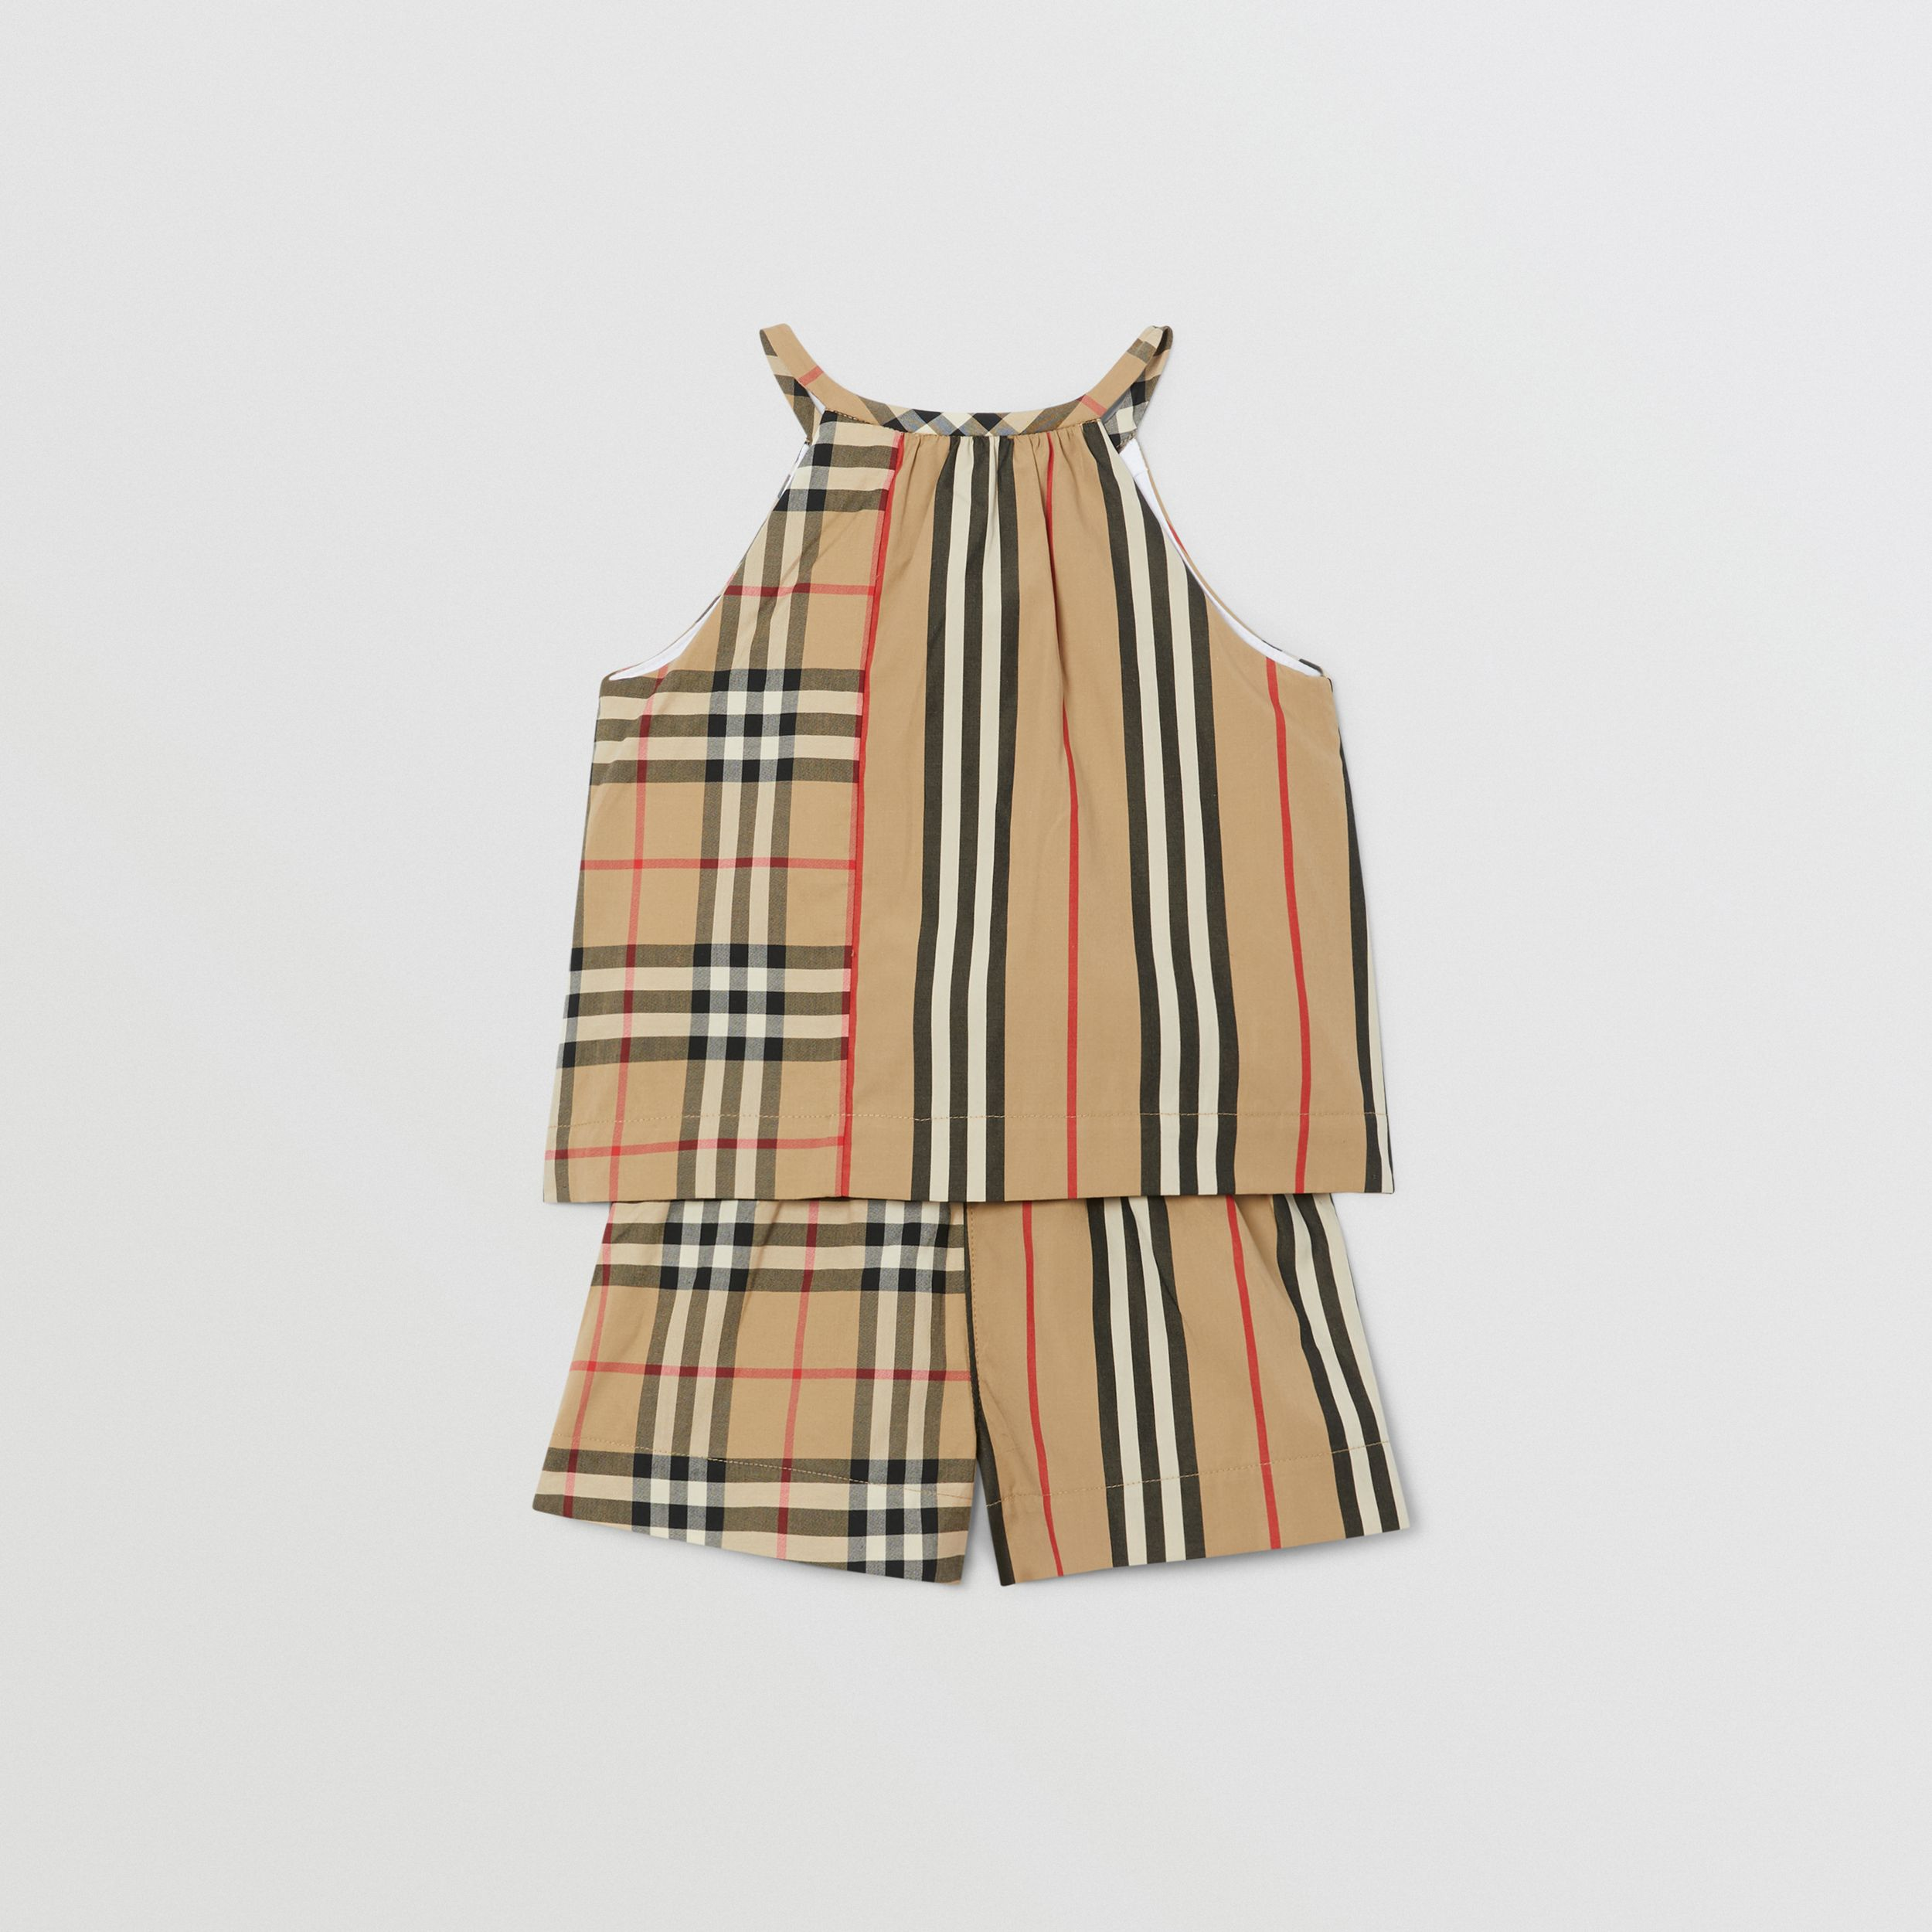 Vintage Check and Icon Stripe Cotton Playsuit in Archive Beige - Children | Burberry - 4